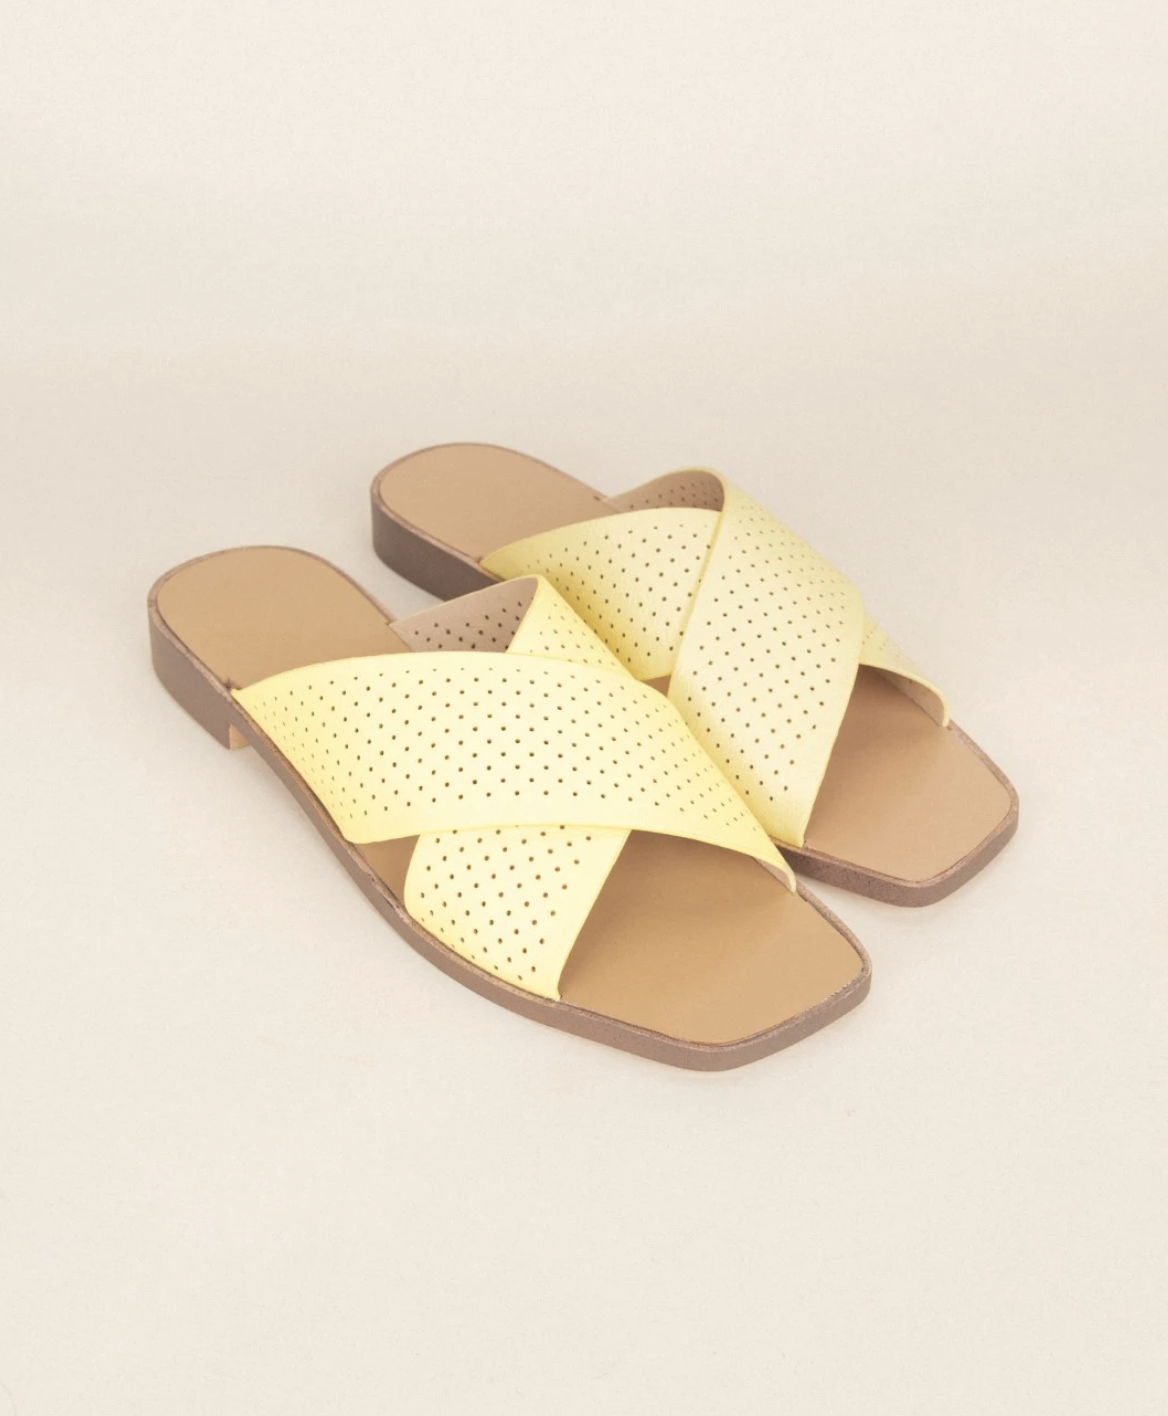 Juliette Lemon Perforated Sandal